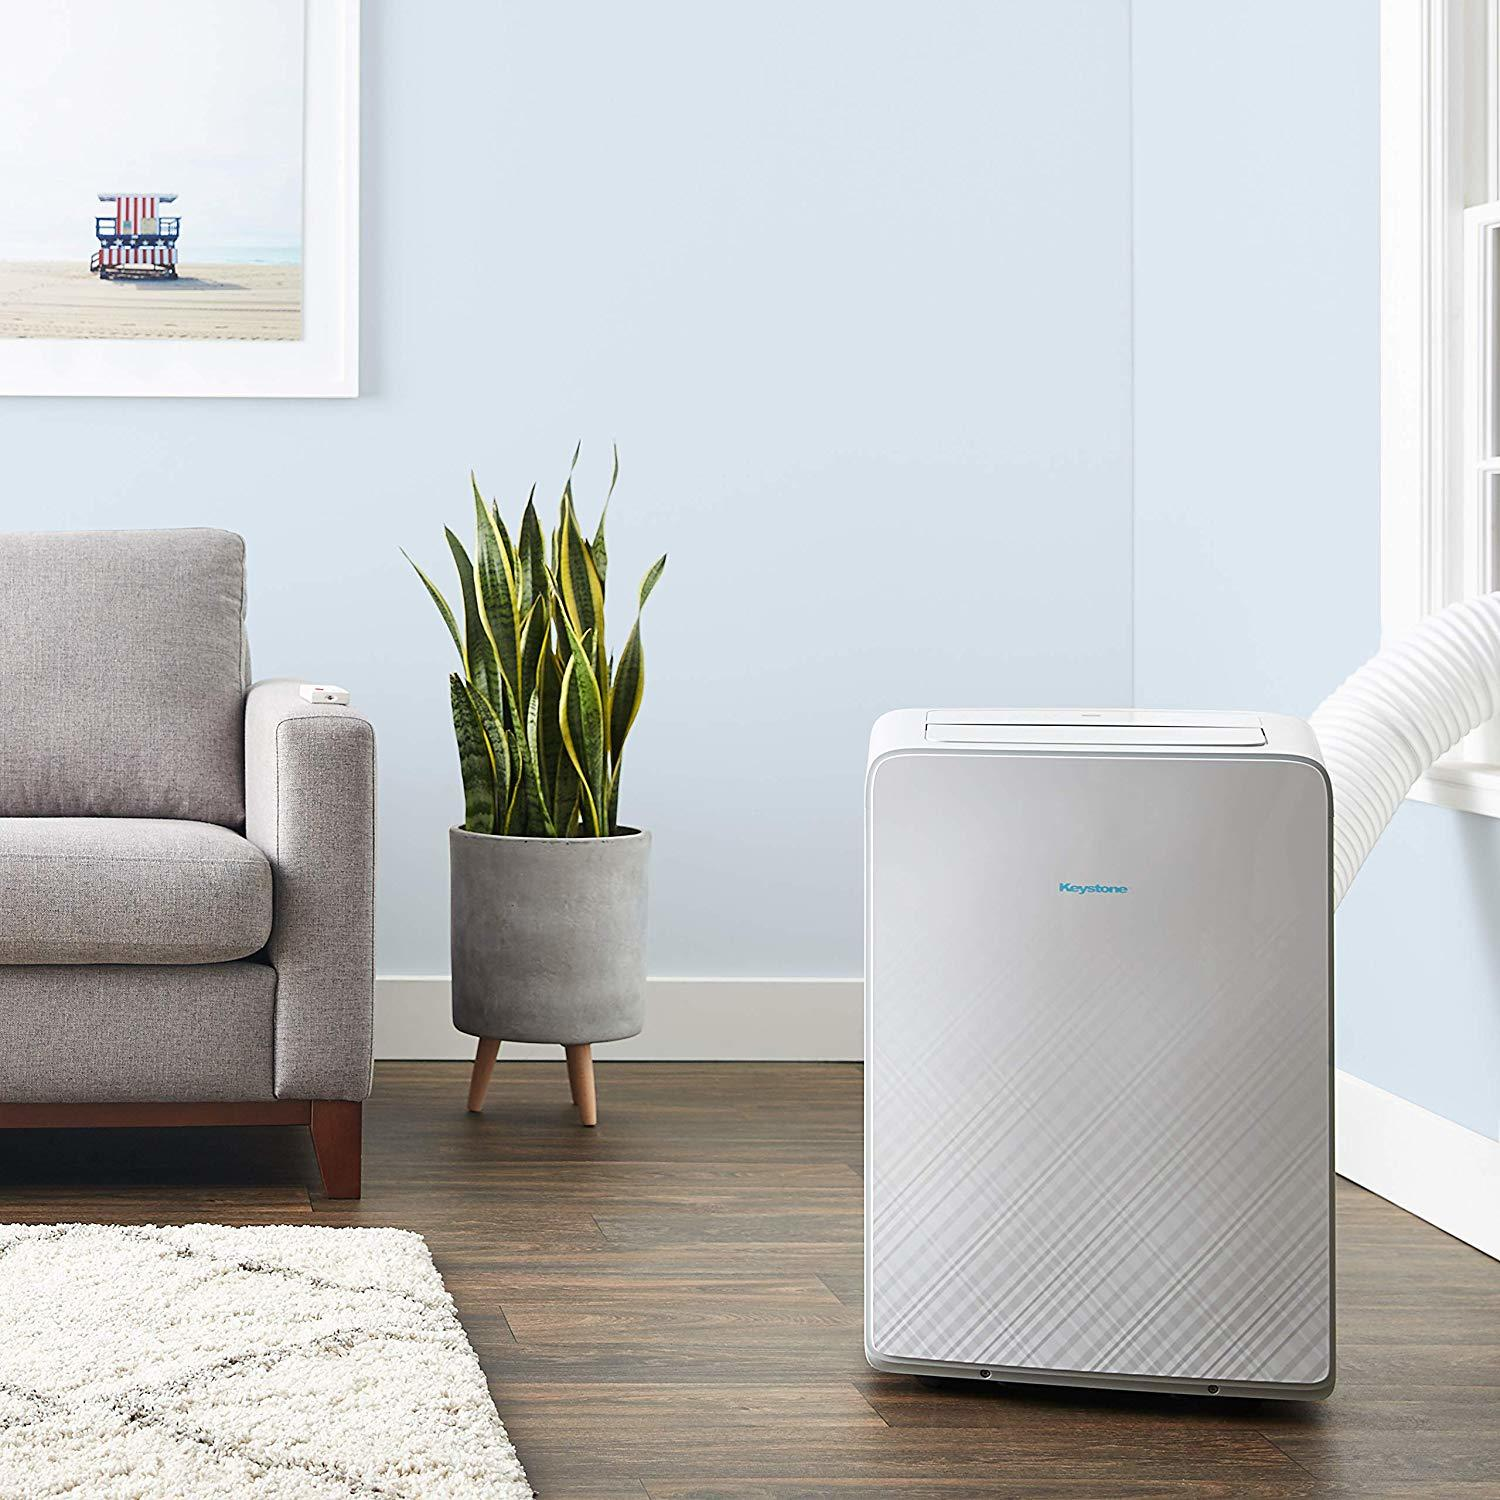 keystone-m-series-14000-btu-portable-air-conditioner